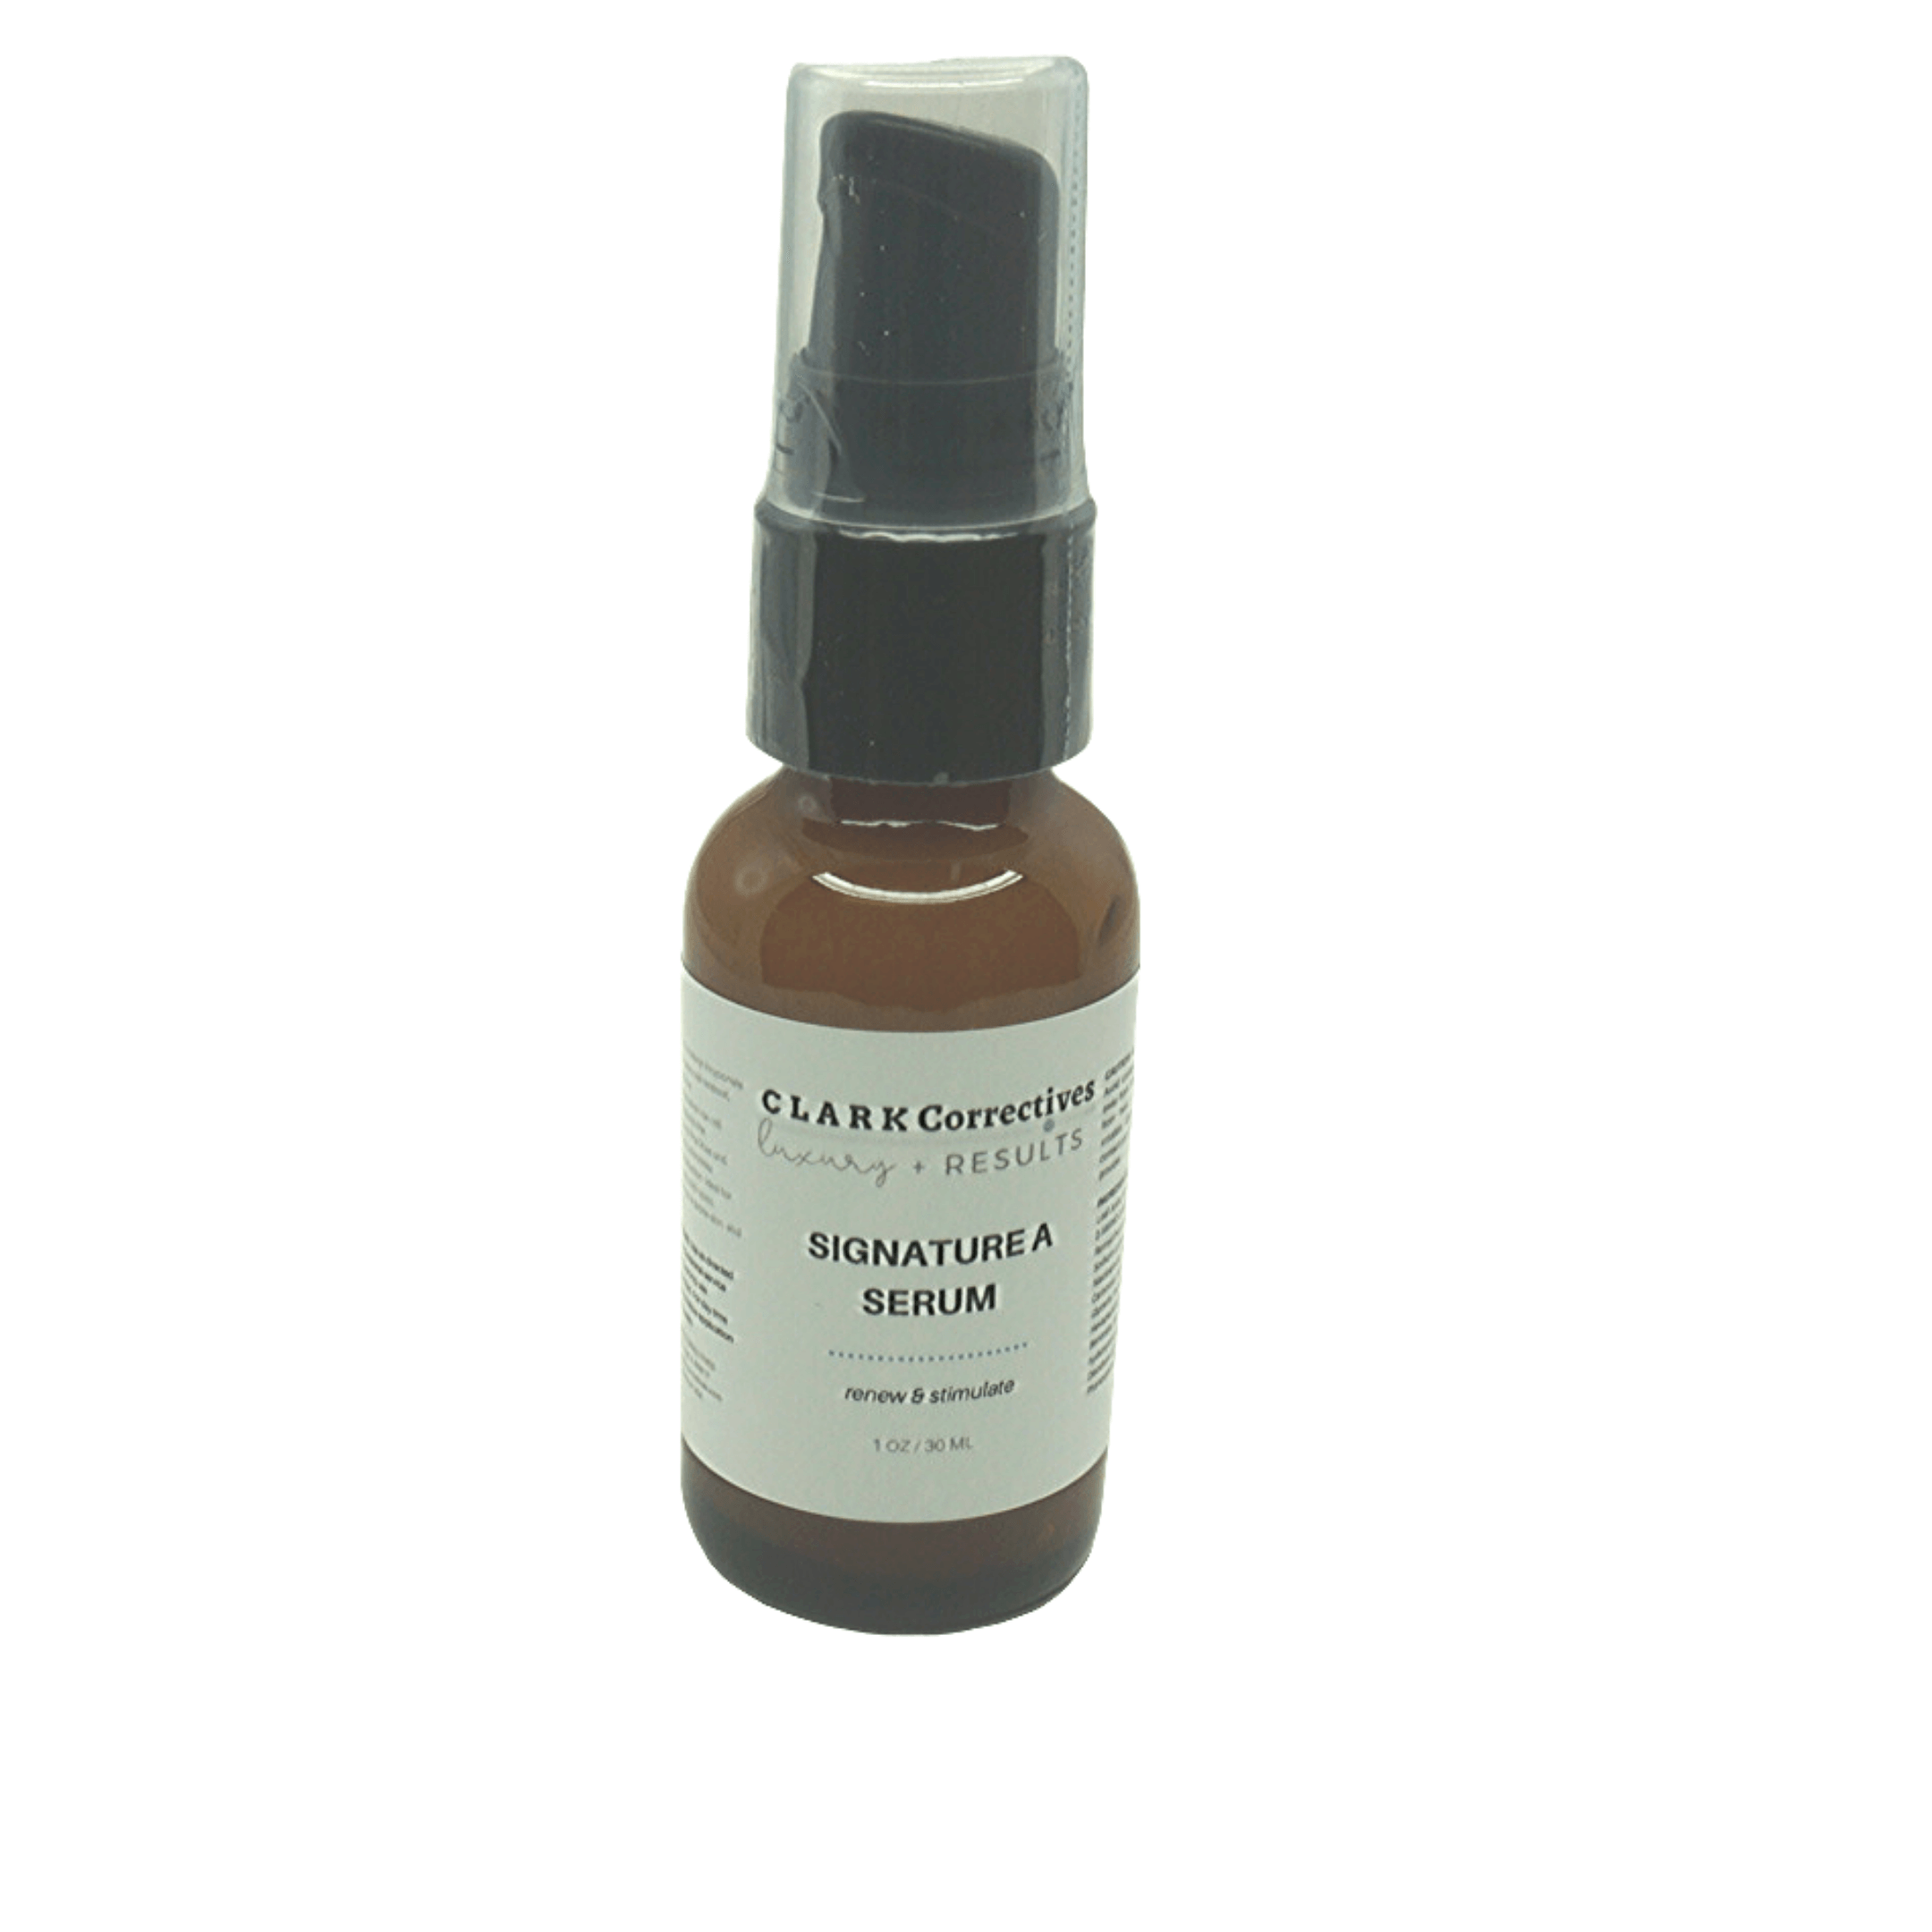 Signature Serum A - white